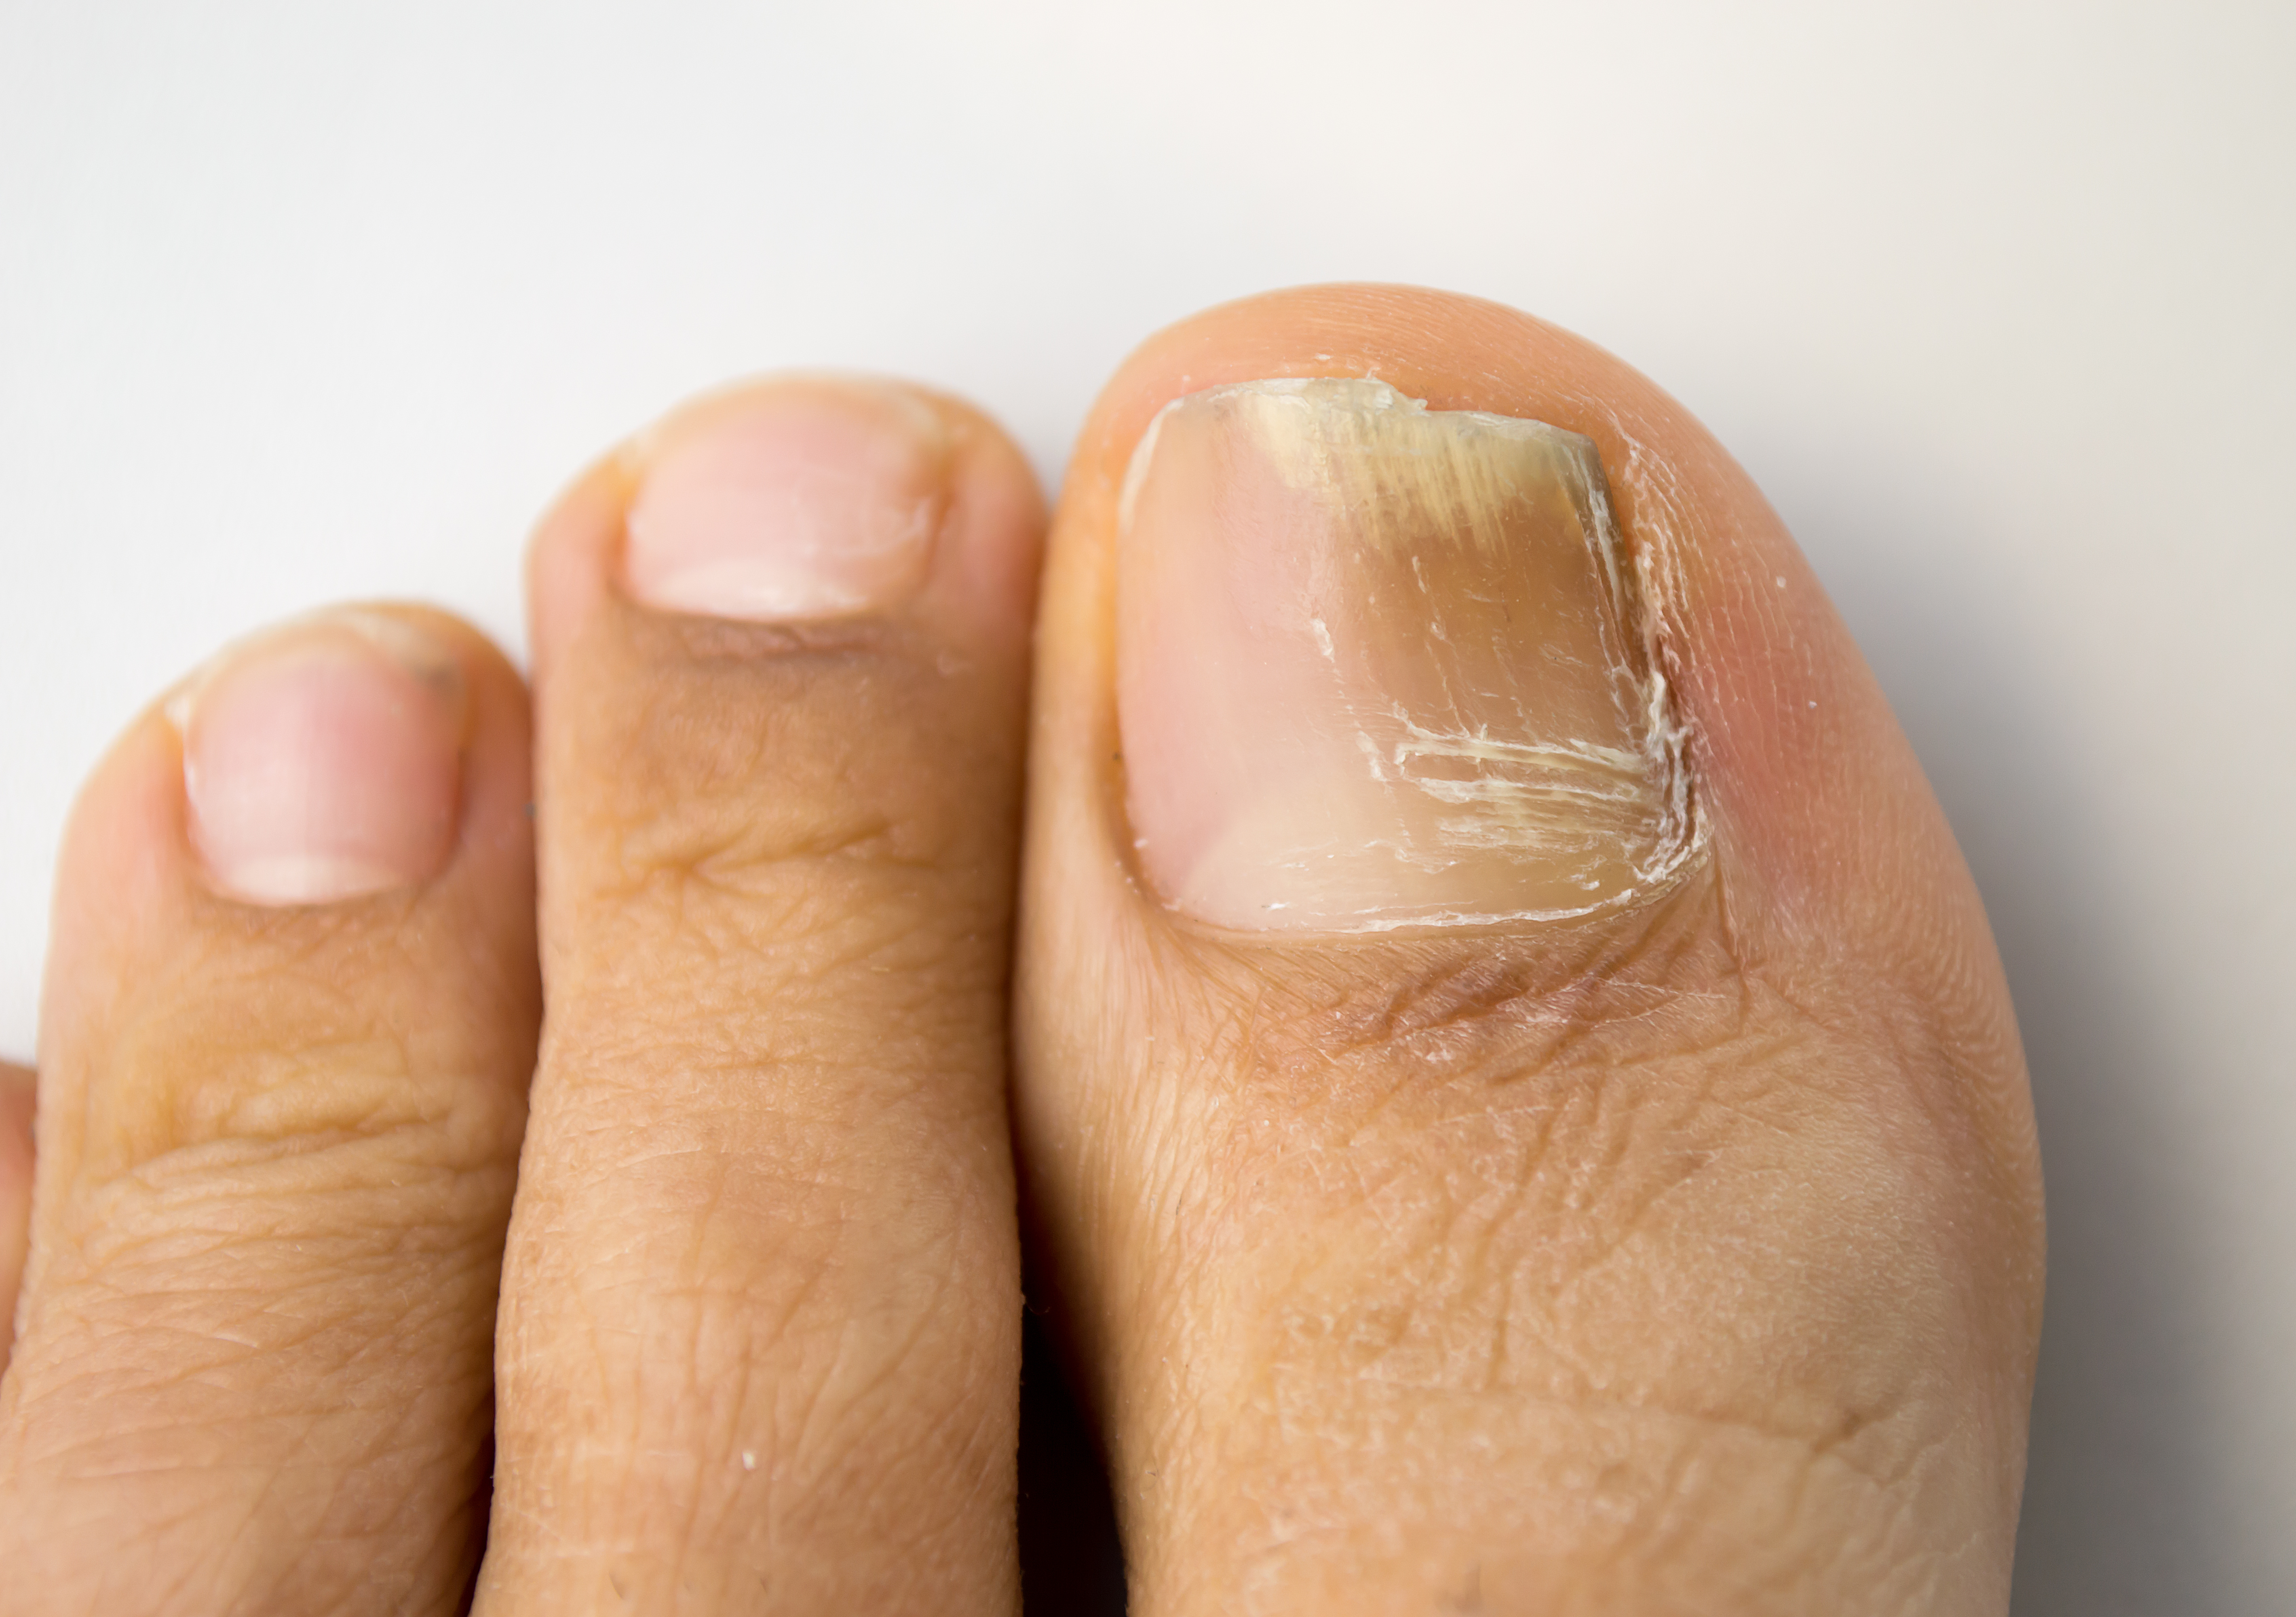 Why Do My Nails Turn Yellow? - The Pretty Pimple